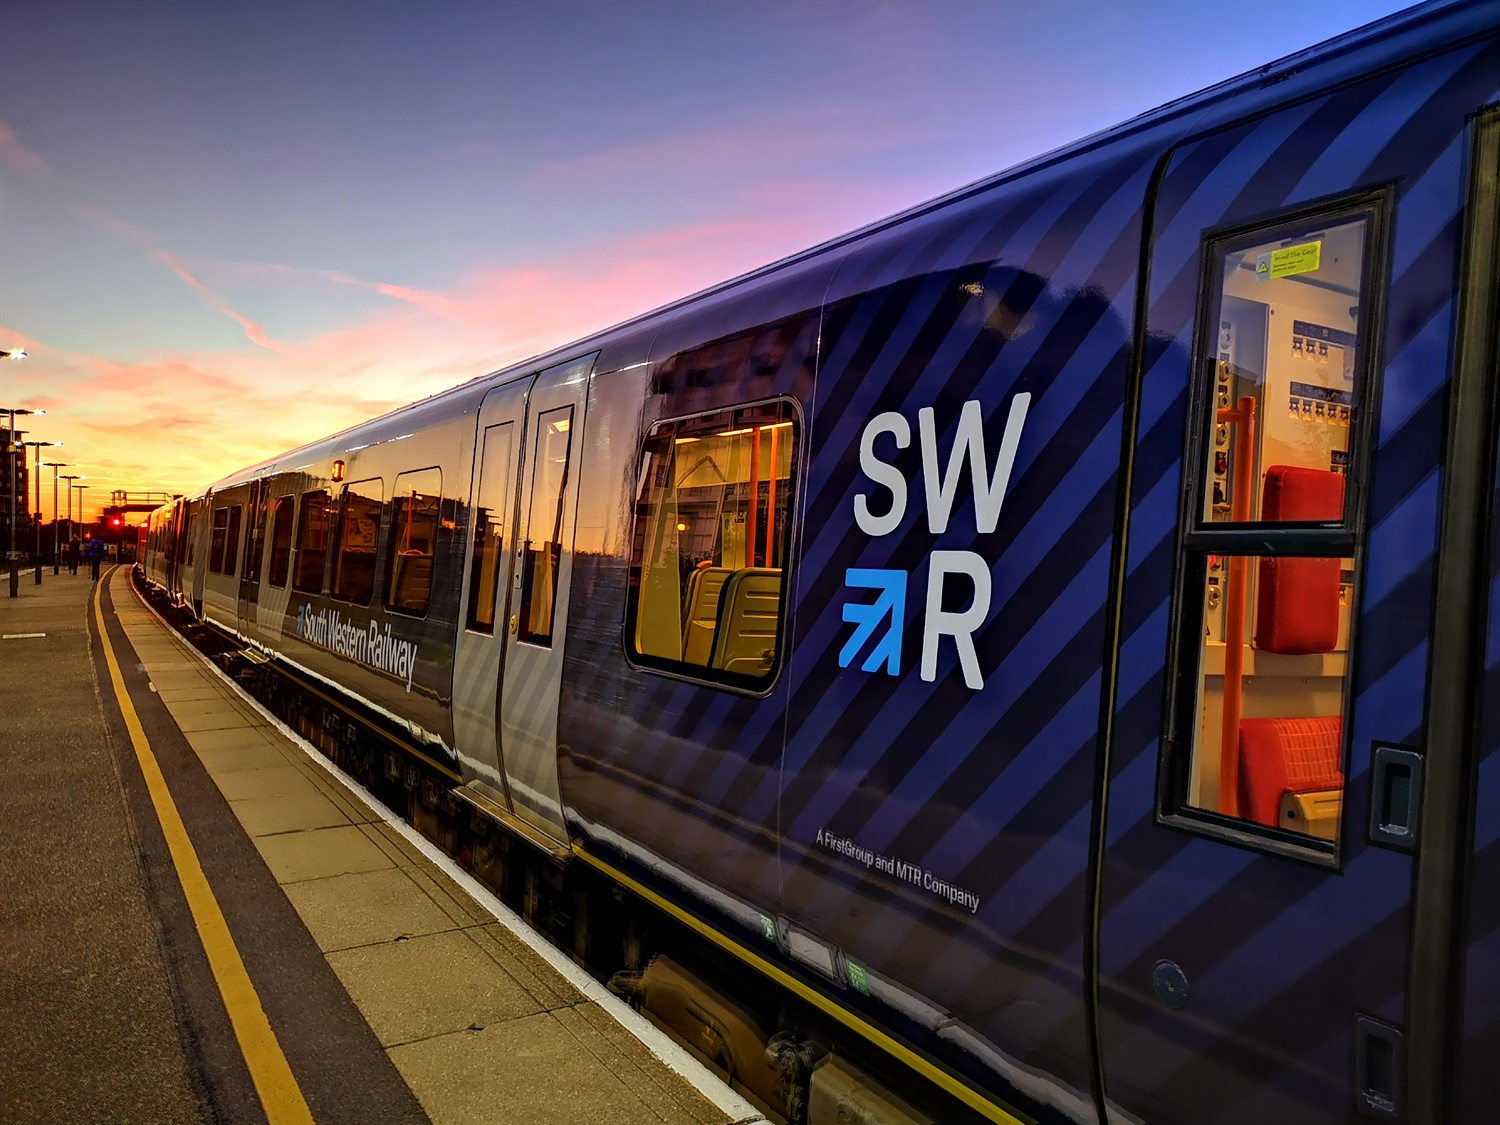 South Western Railway franchise uncertain after £137m loss